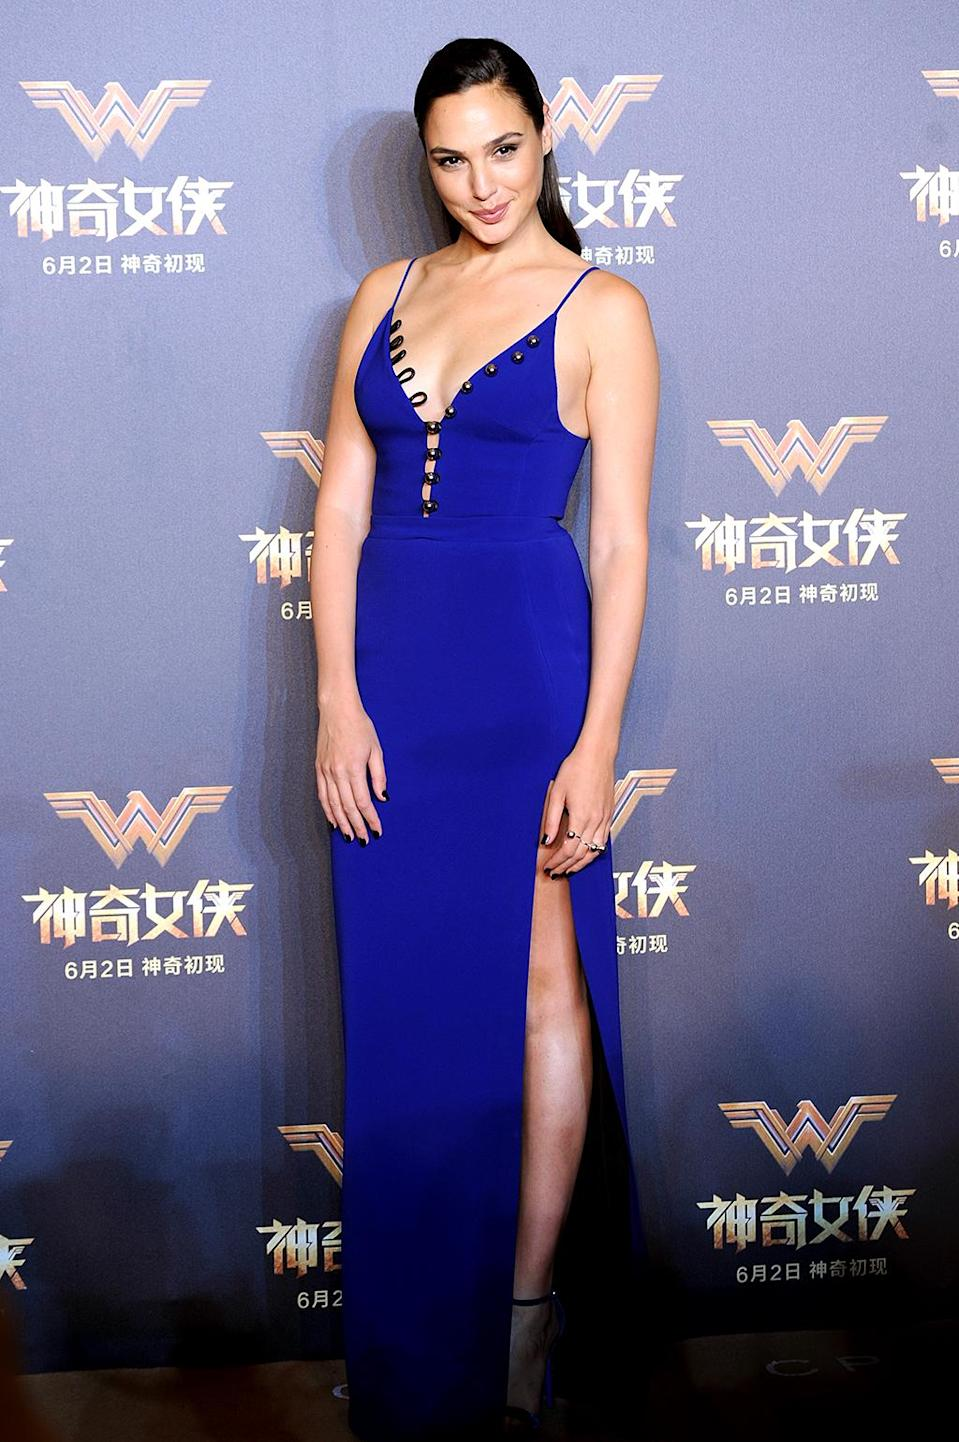 <p>At the Chinese premiere of <i>Wonder Woman</i>, Gadot broke out a sexy V-neck gown by David Koma. Fun fact: Gadot is used to all the wardrobe changes because she was Miss Israel in 2004. (Photo: VCG/VCG via Getty Images) </p>